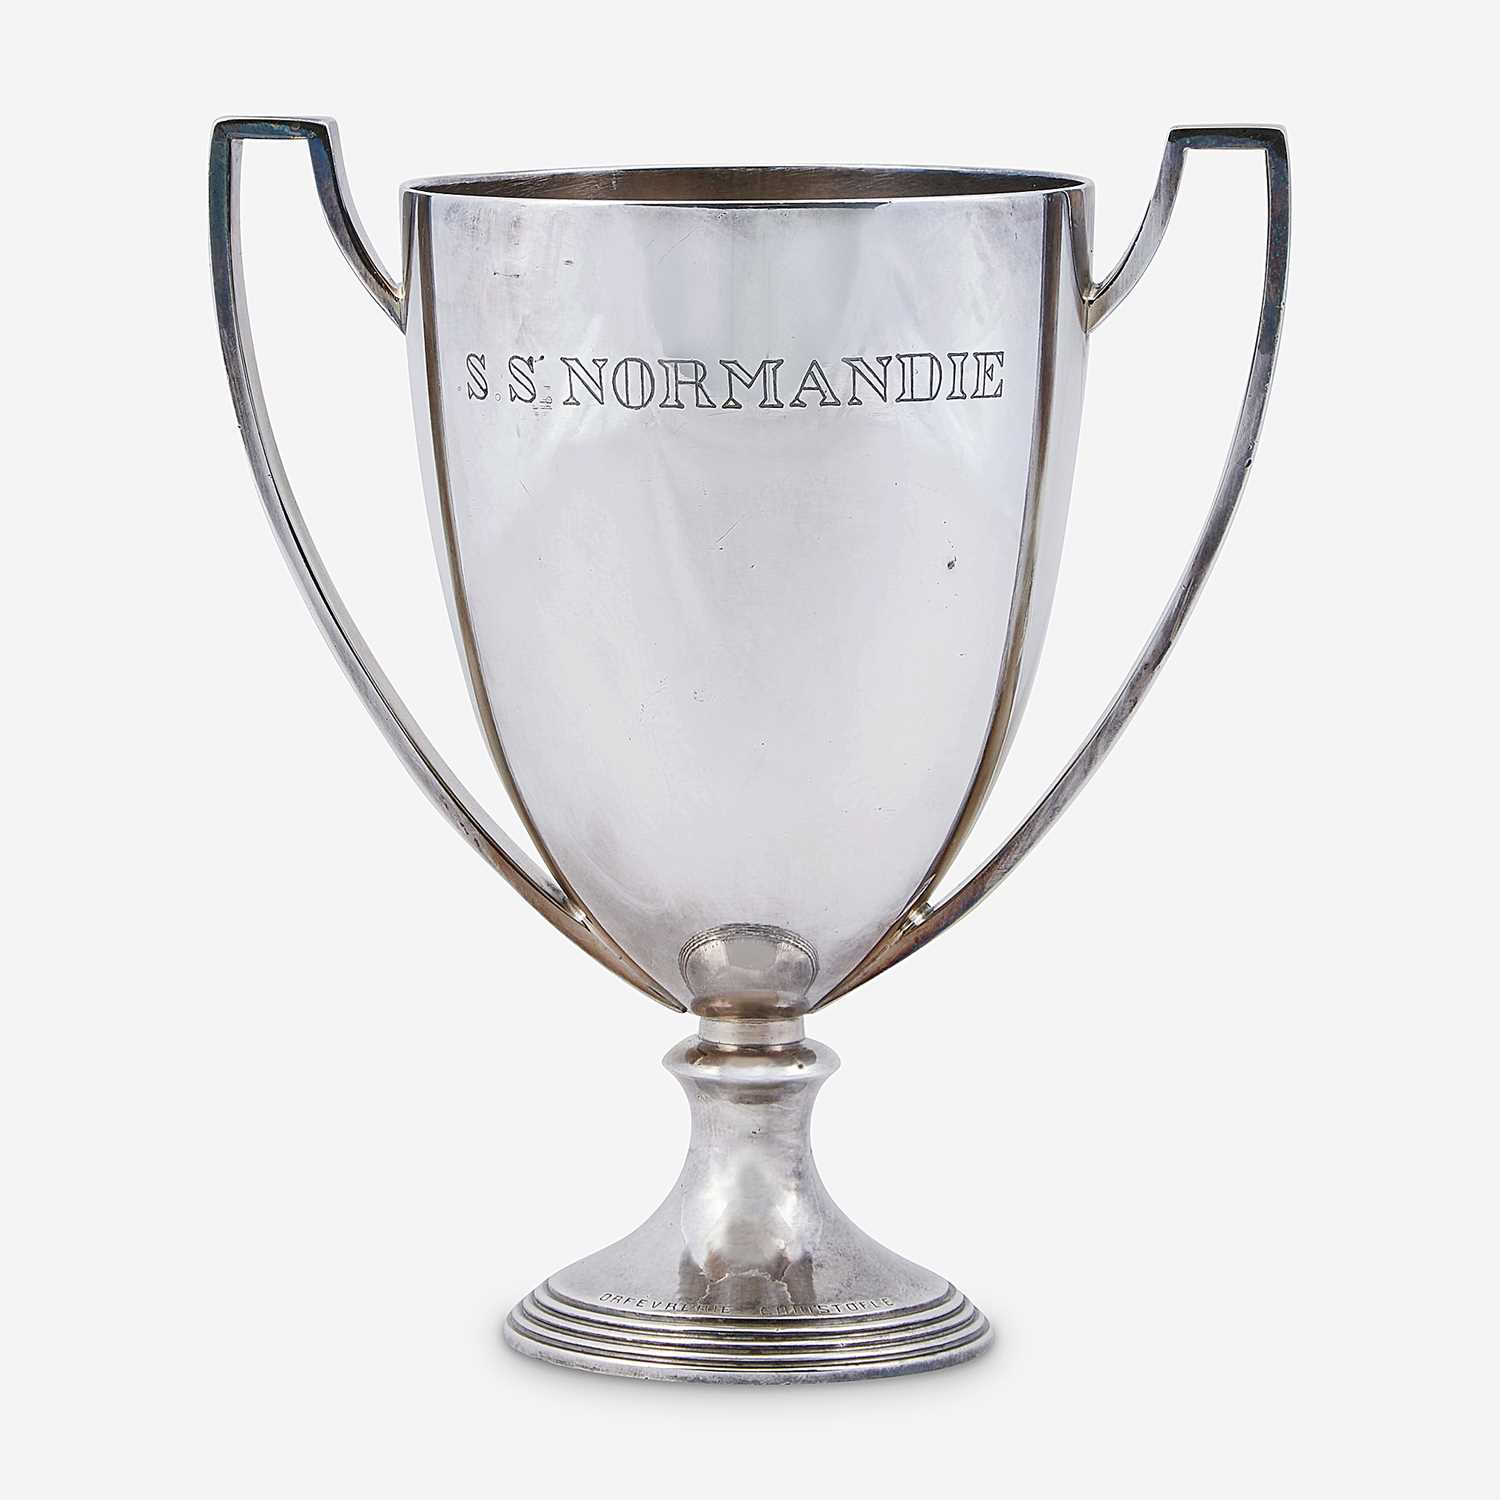 Lot 402 - A Silver-Plated Two-Handled Trophy from the S.S. Normandie